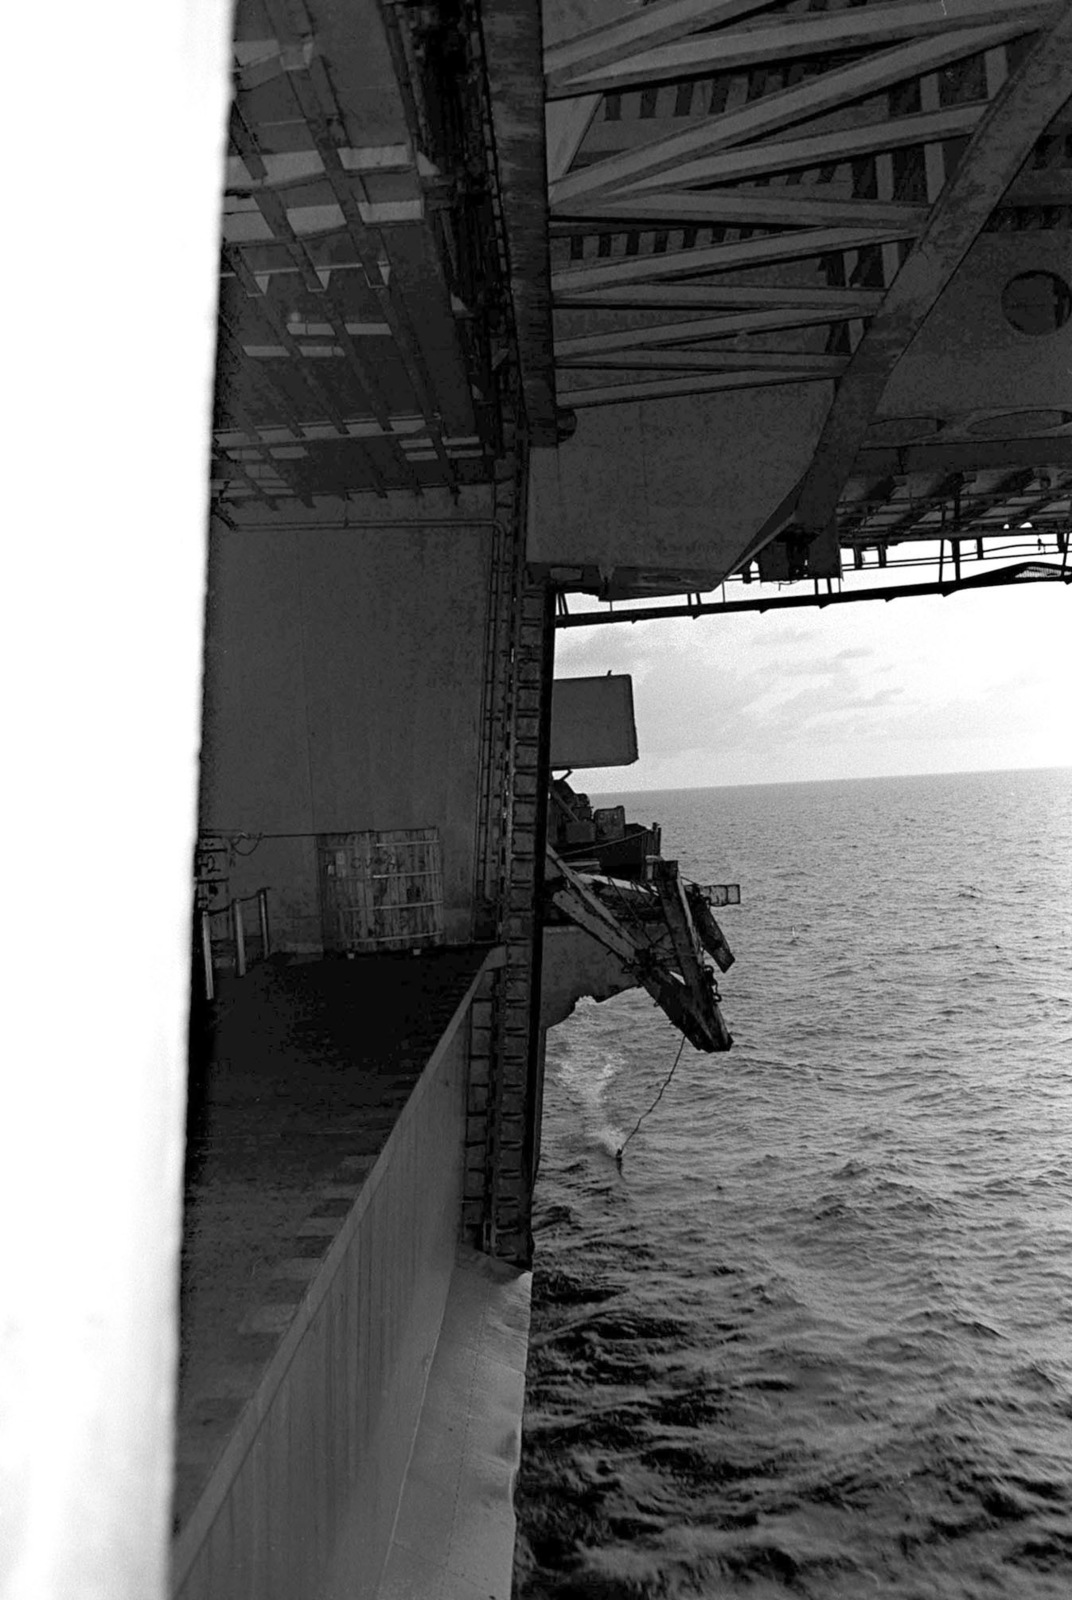 A view of damage resulting to the port aircraft elevator of the aircraft carrier USS MIDWAY (CV 41) during a collision with the Panamanian freighter CACTUS